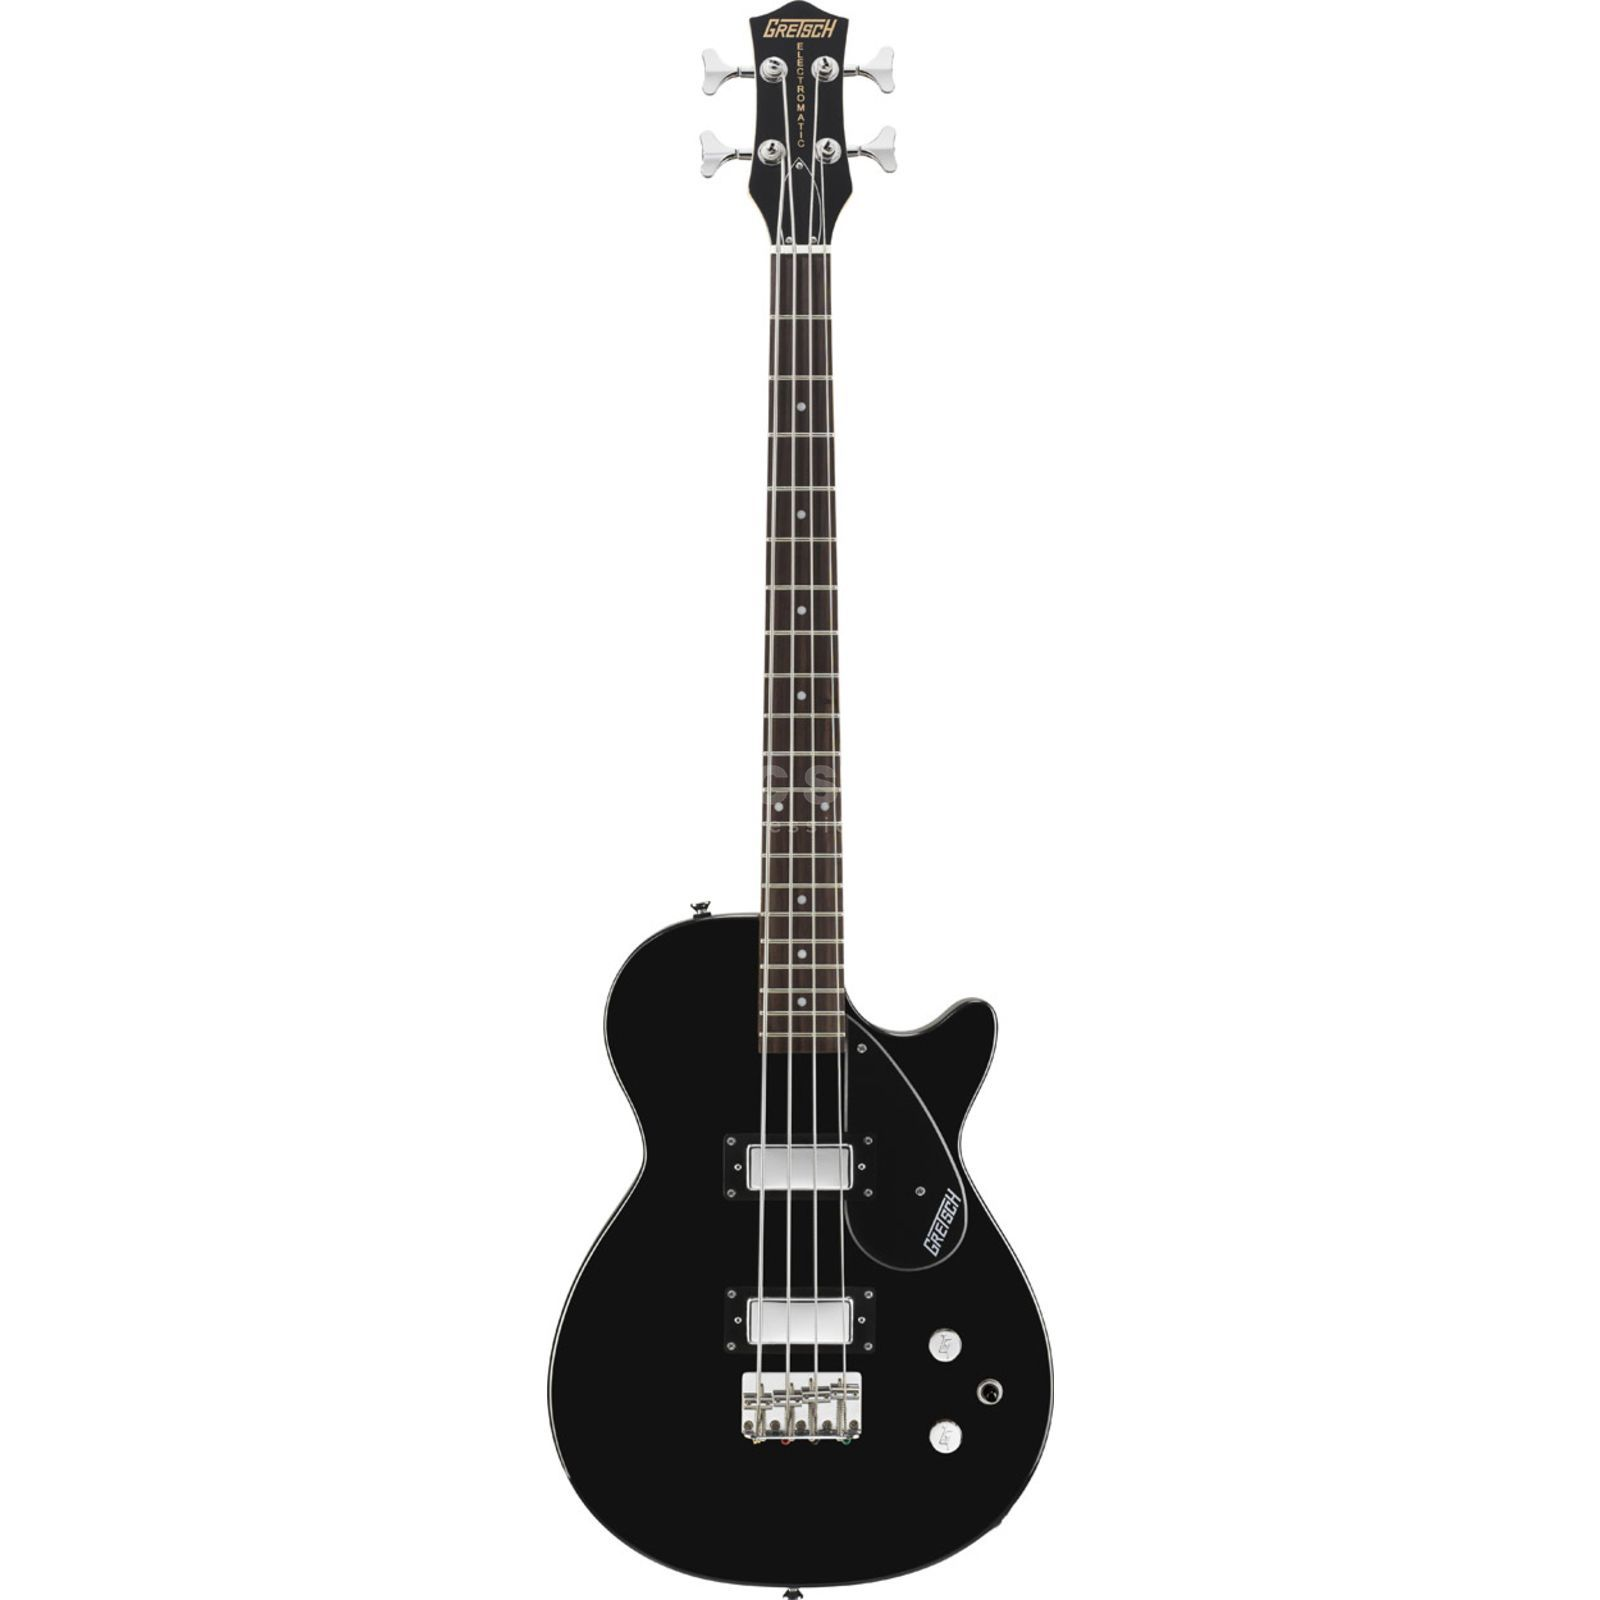 Gretsch G2220 Junior Jet II Bass Guita r, Black   Изображение товара